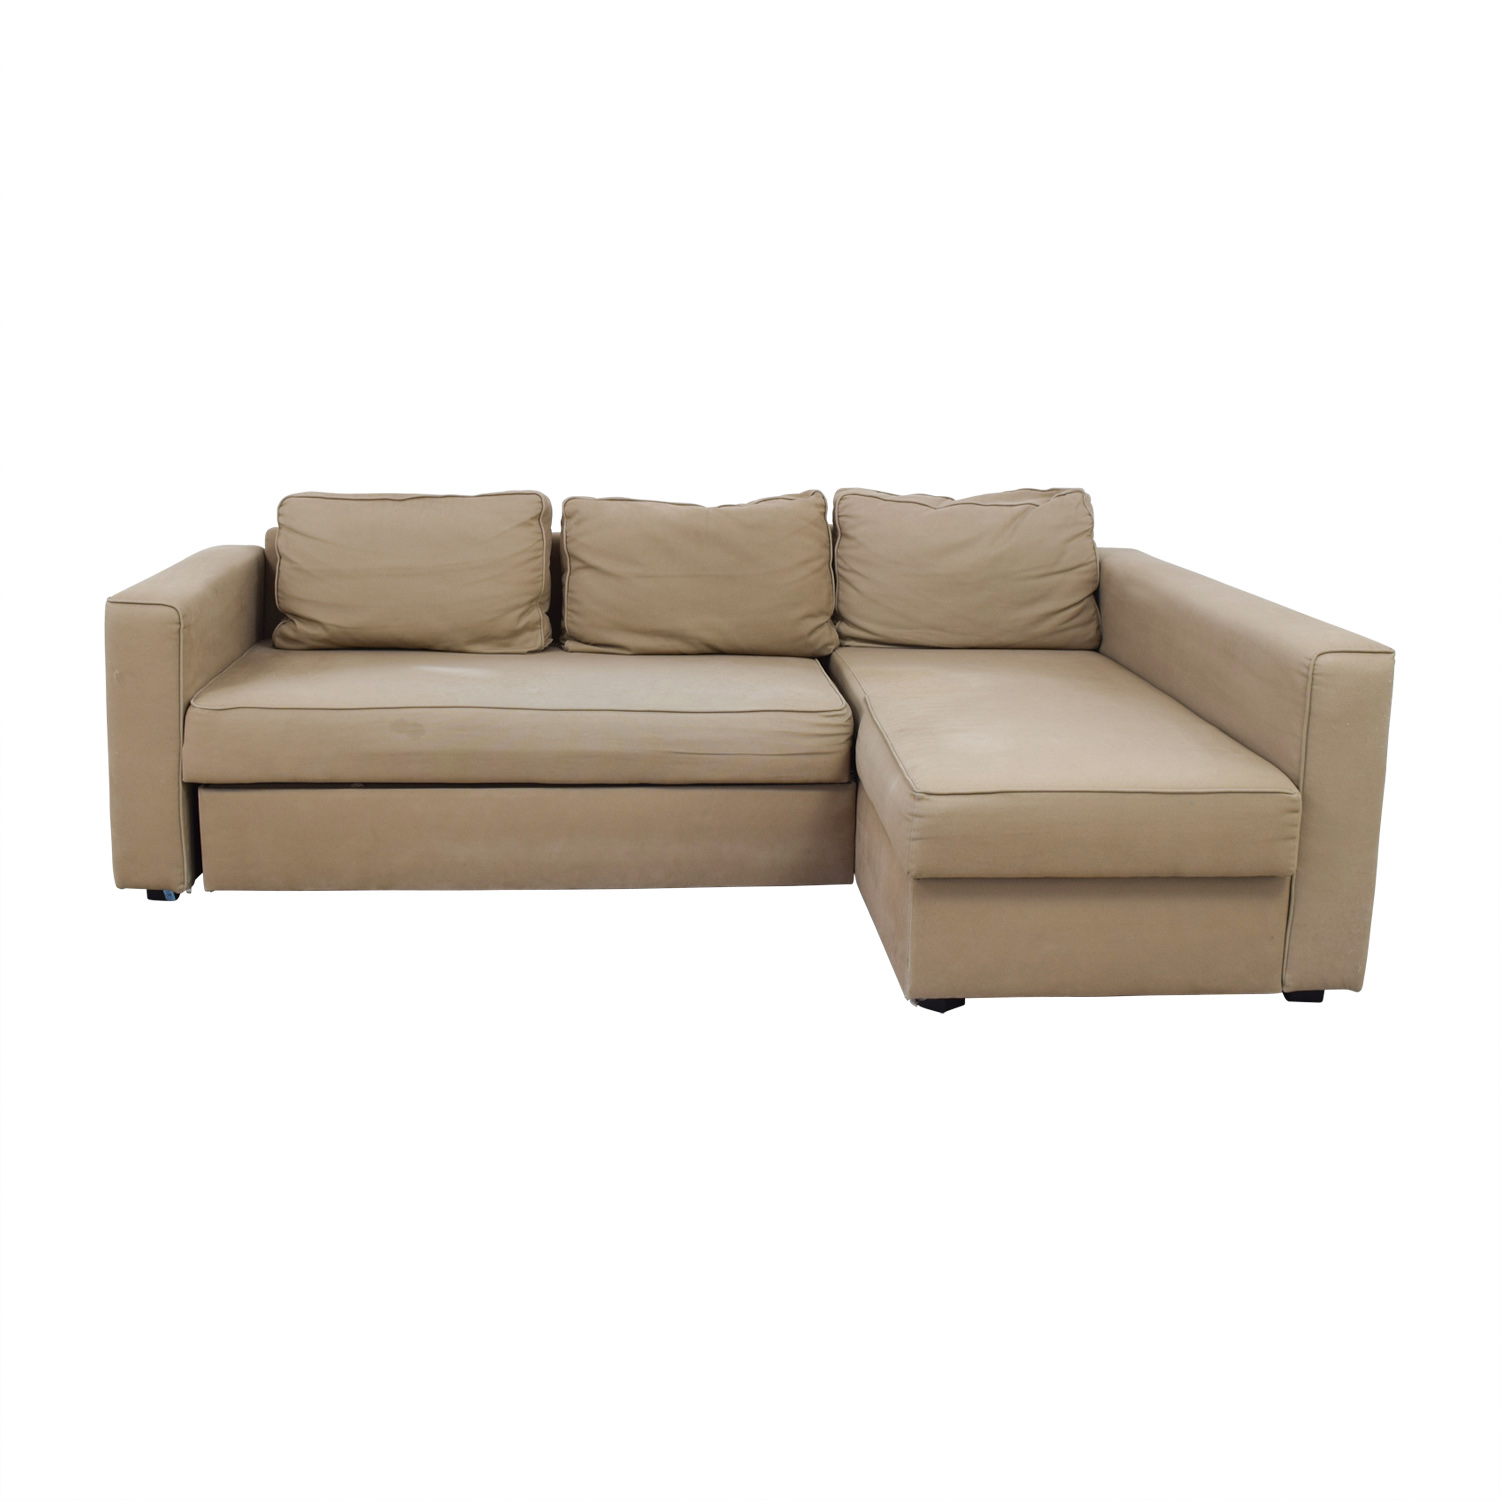 IKEA Manstad Sectional Sofa Bed with Storage IKEA